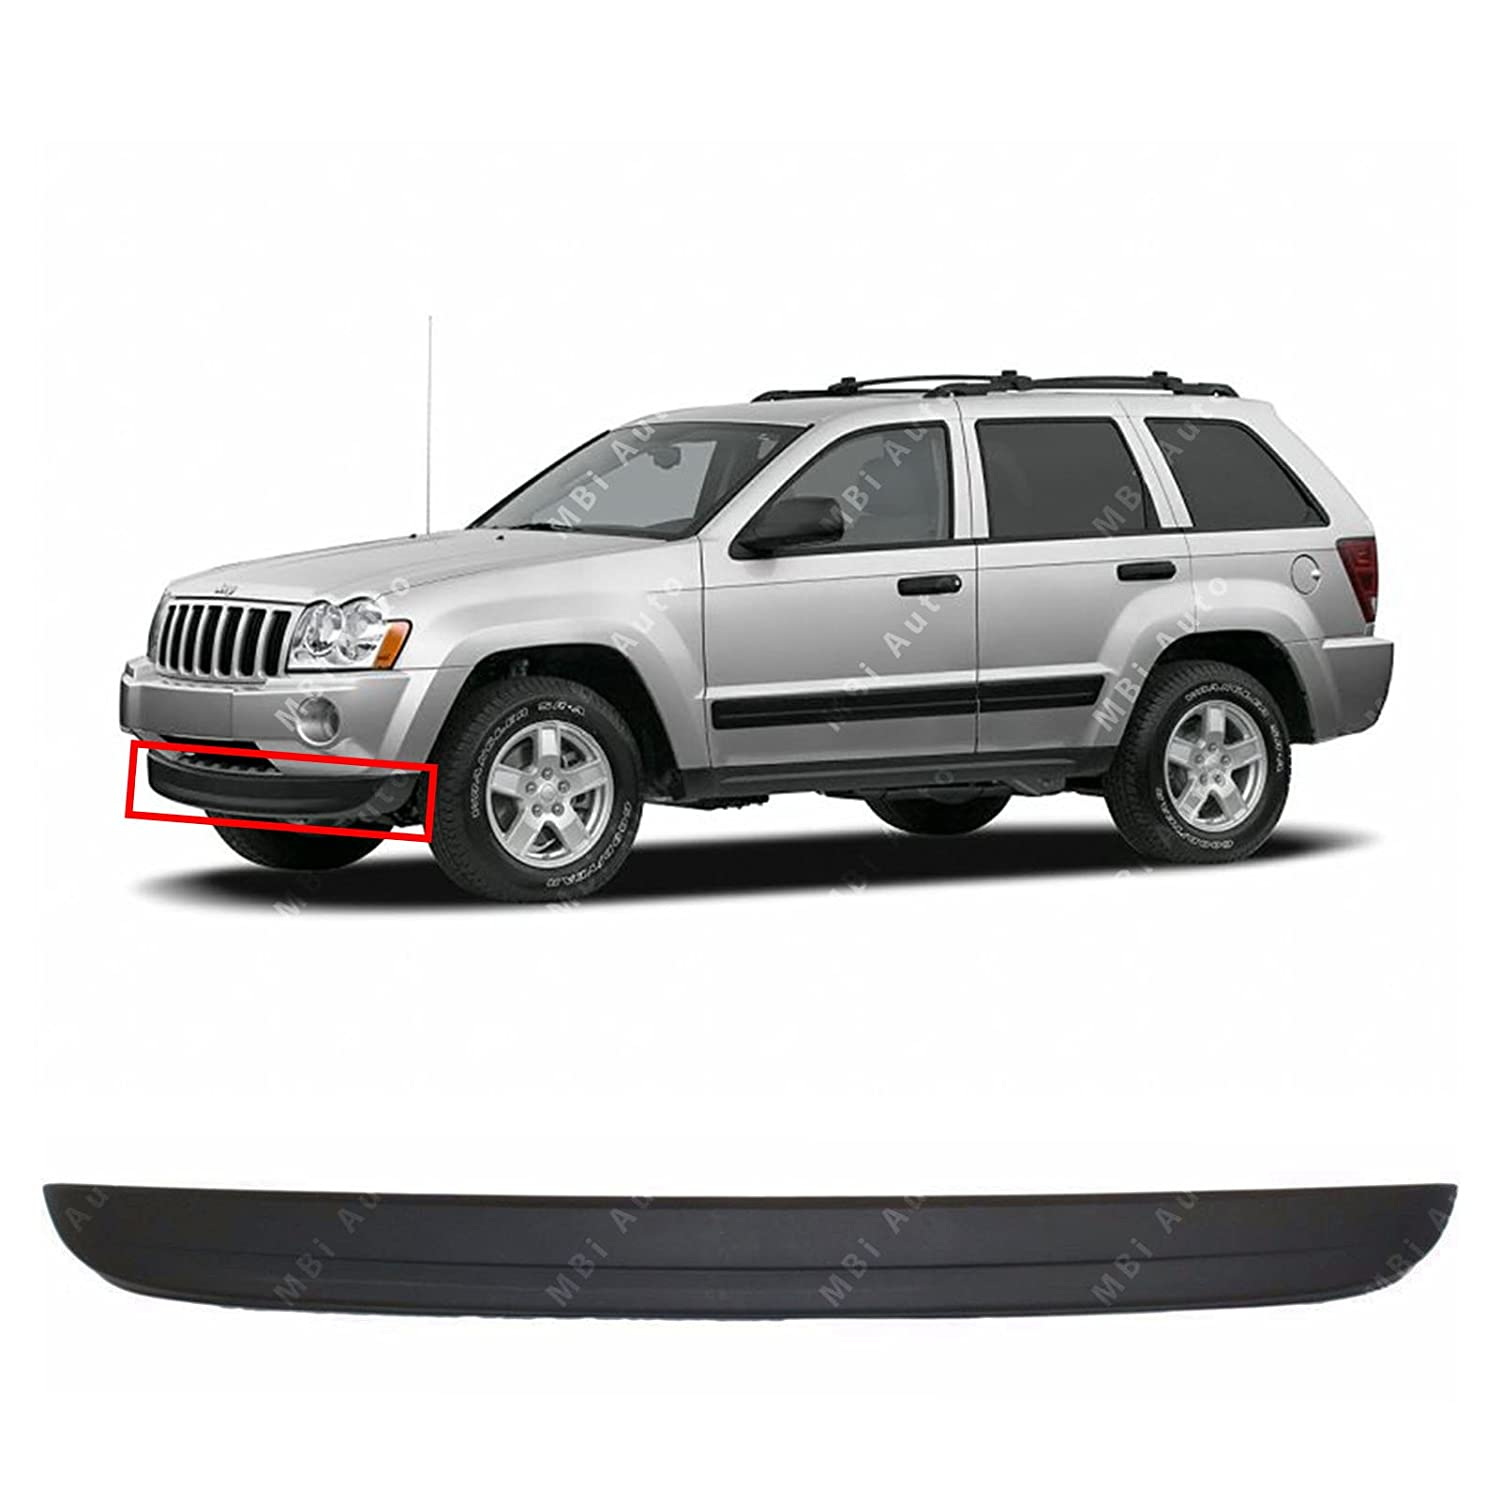 Textured Black Front Bumper Lower Air Deflector for 2005 2006 2007 Jeep Grand Cherokee 05 06 07 CH1090130 MBI AUTO